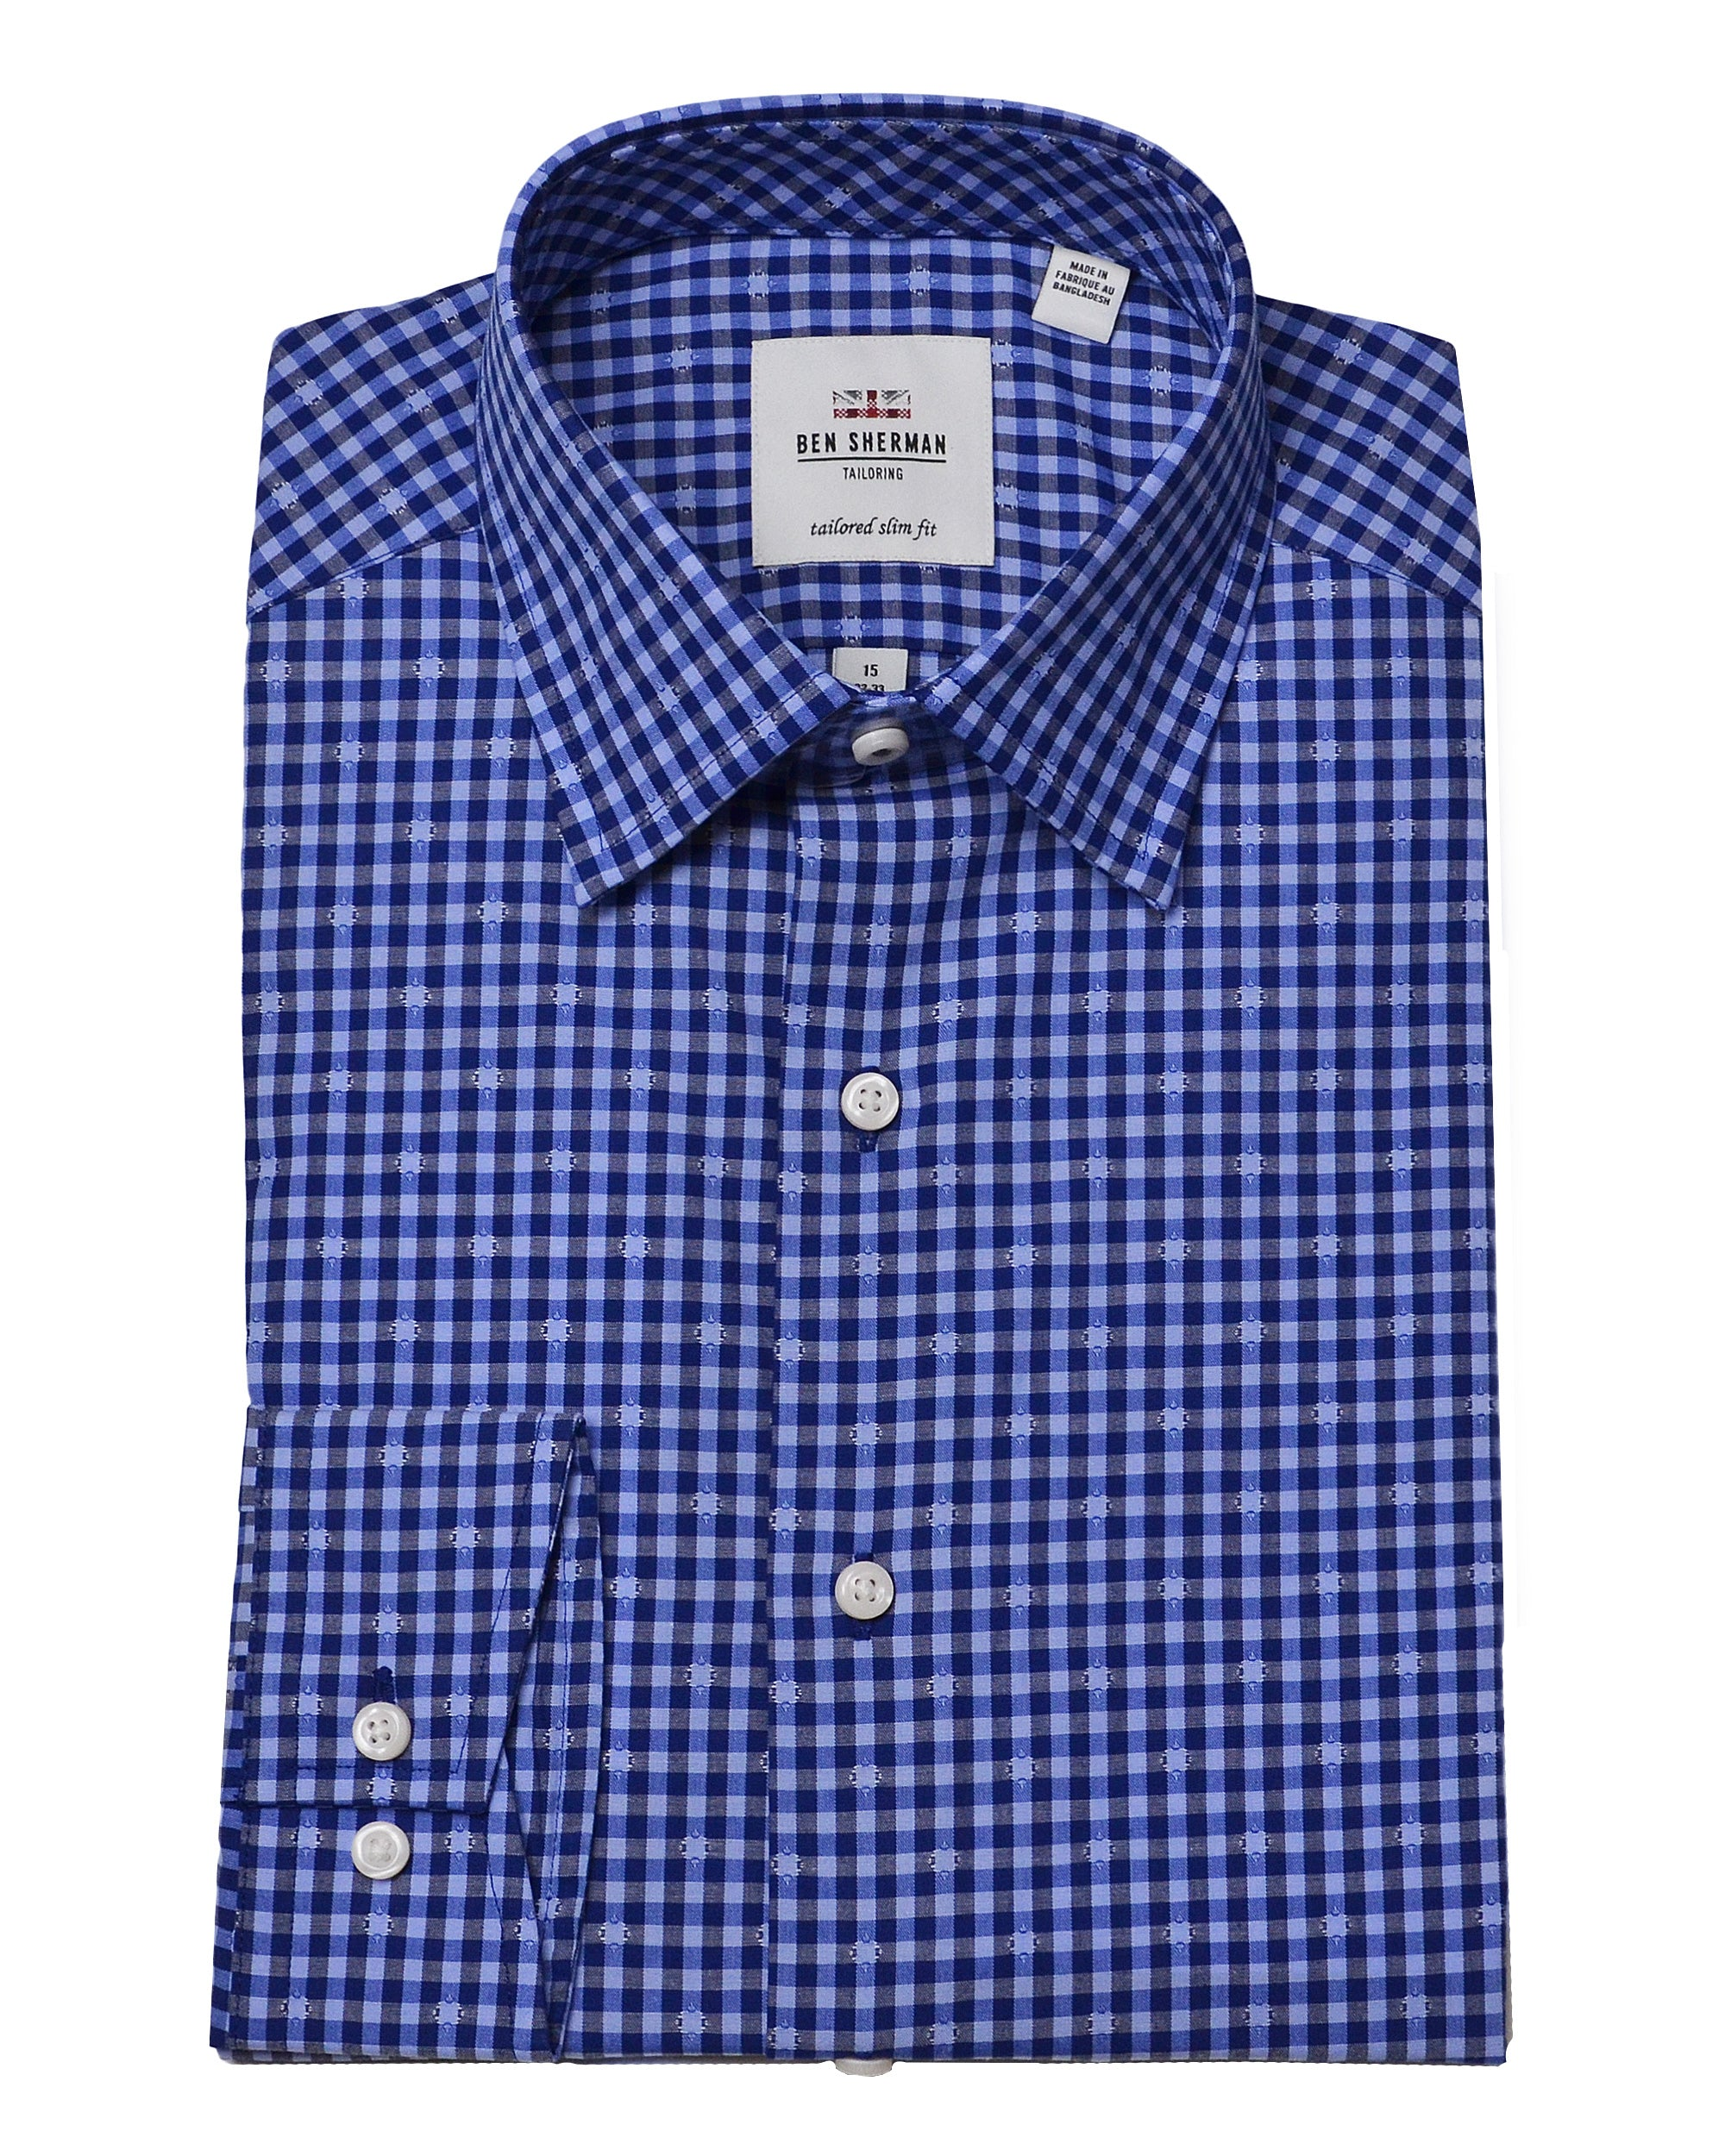 Navy & Blue Dobby Gingham Slim Fit Dress Shirt